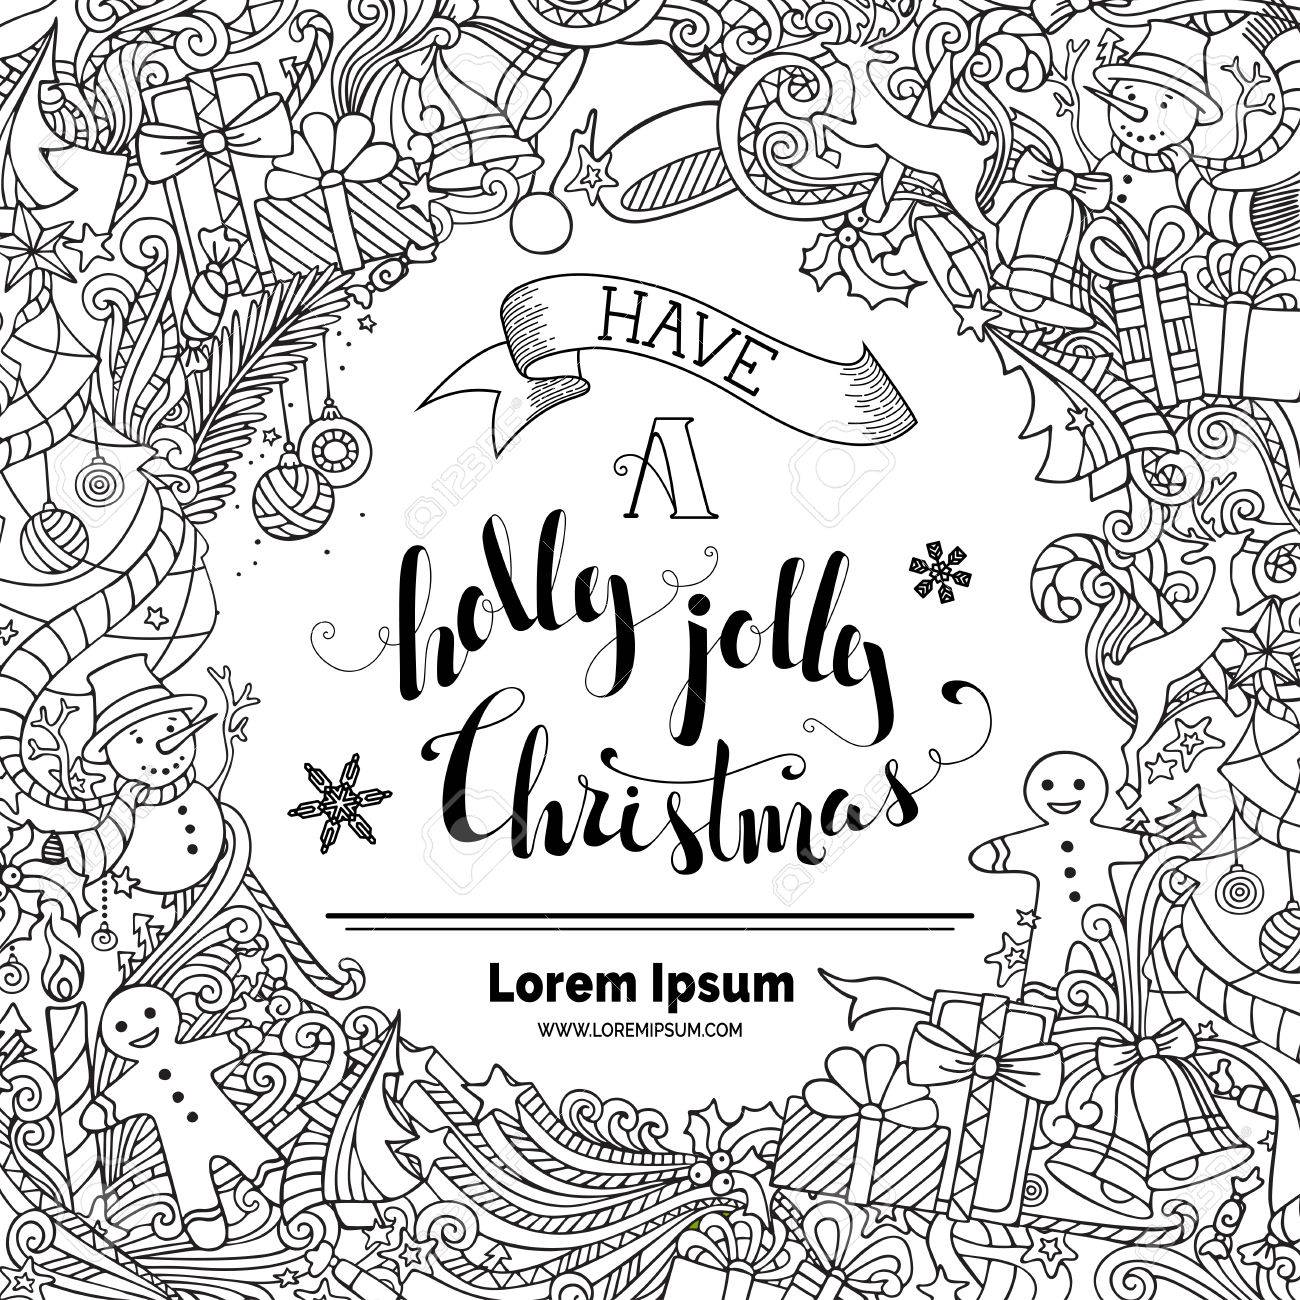 Have A Holly Jolly Christmas! Doodles Merry Christmas Background ...